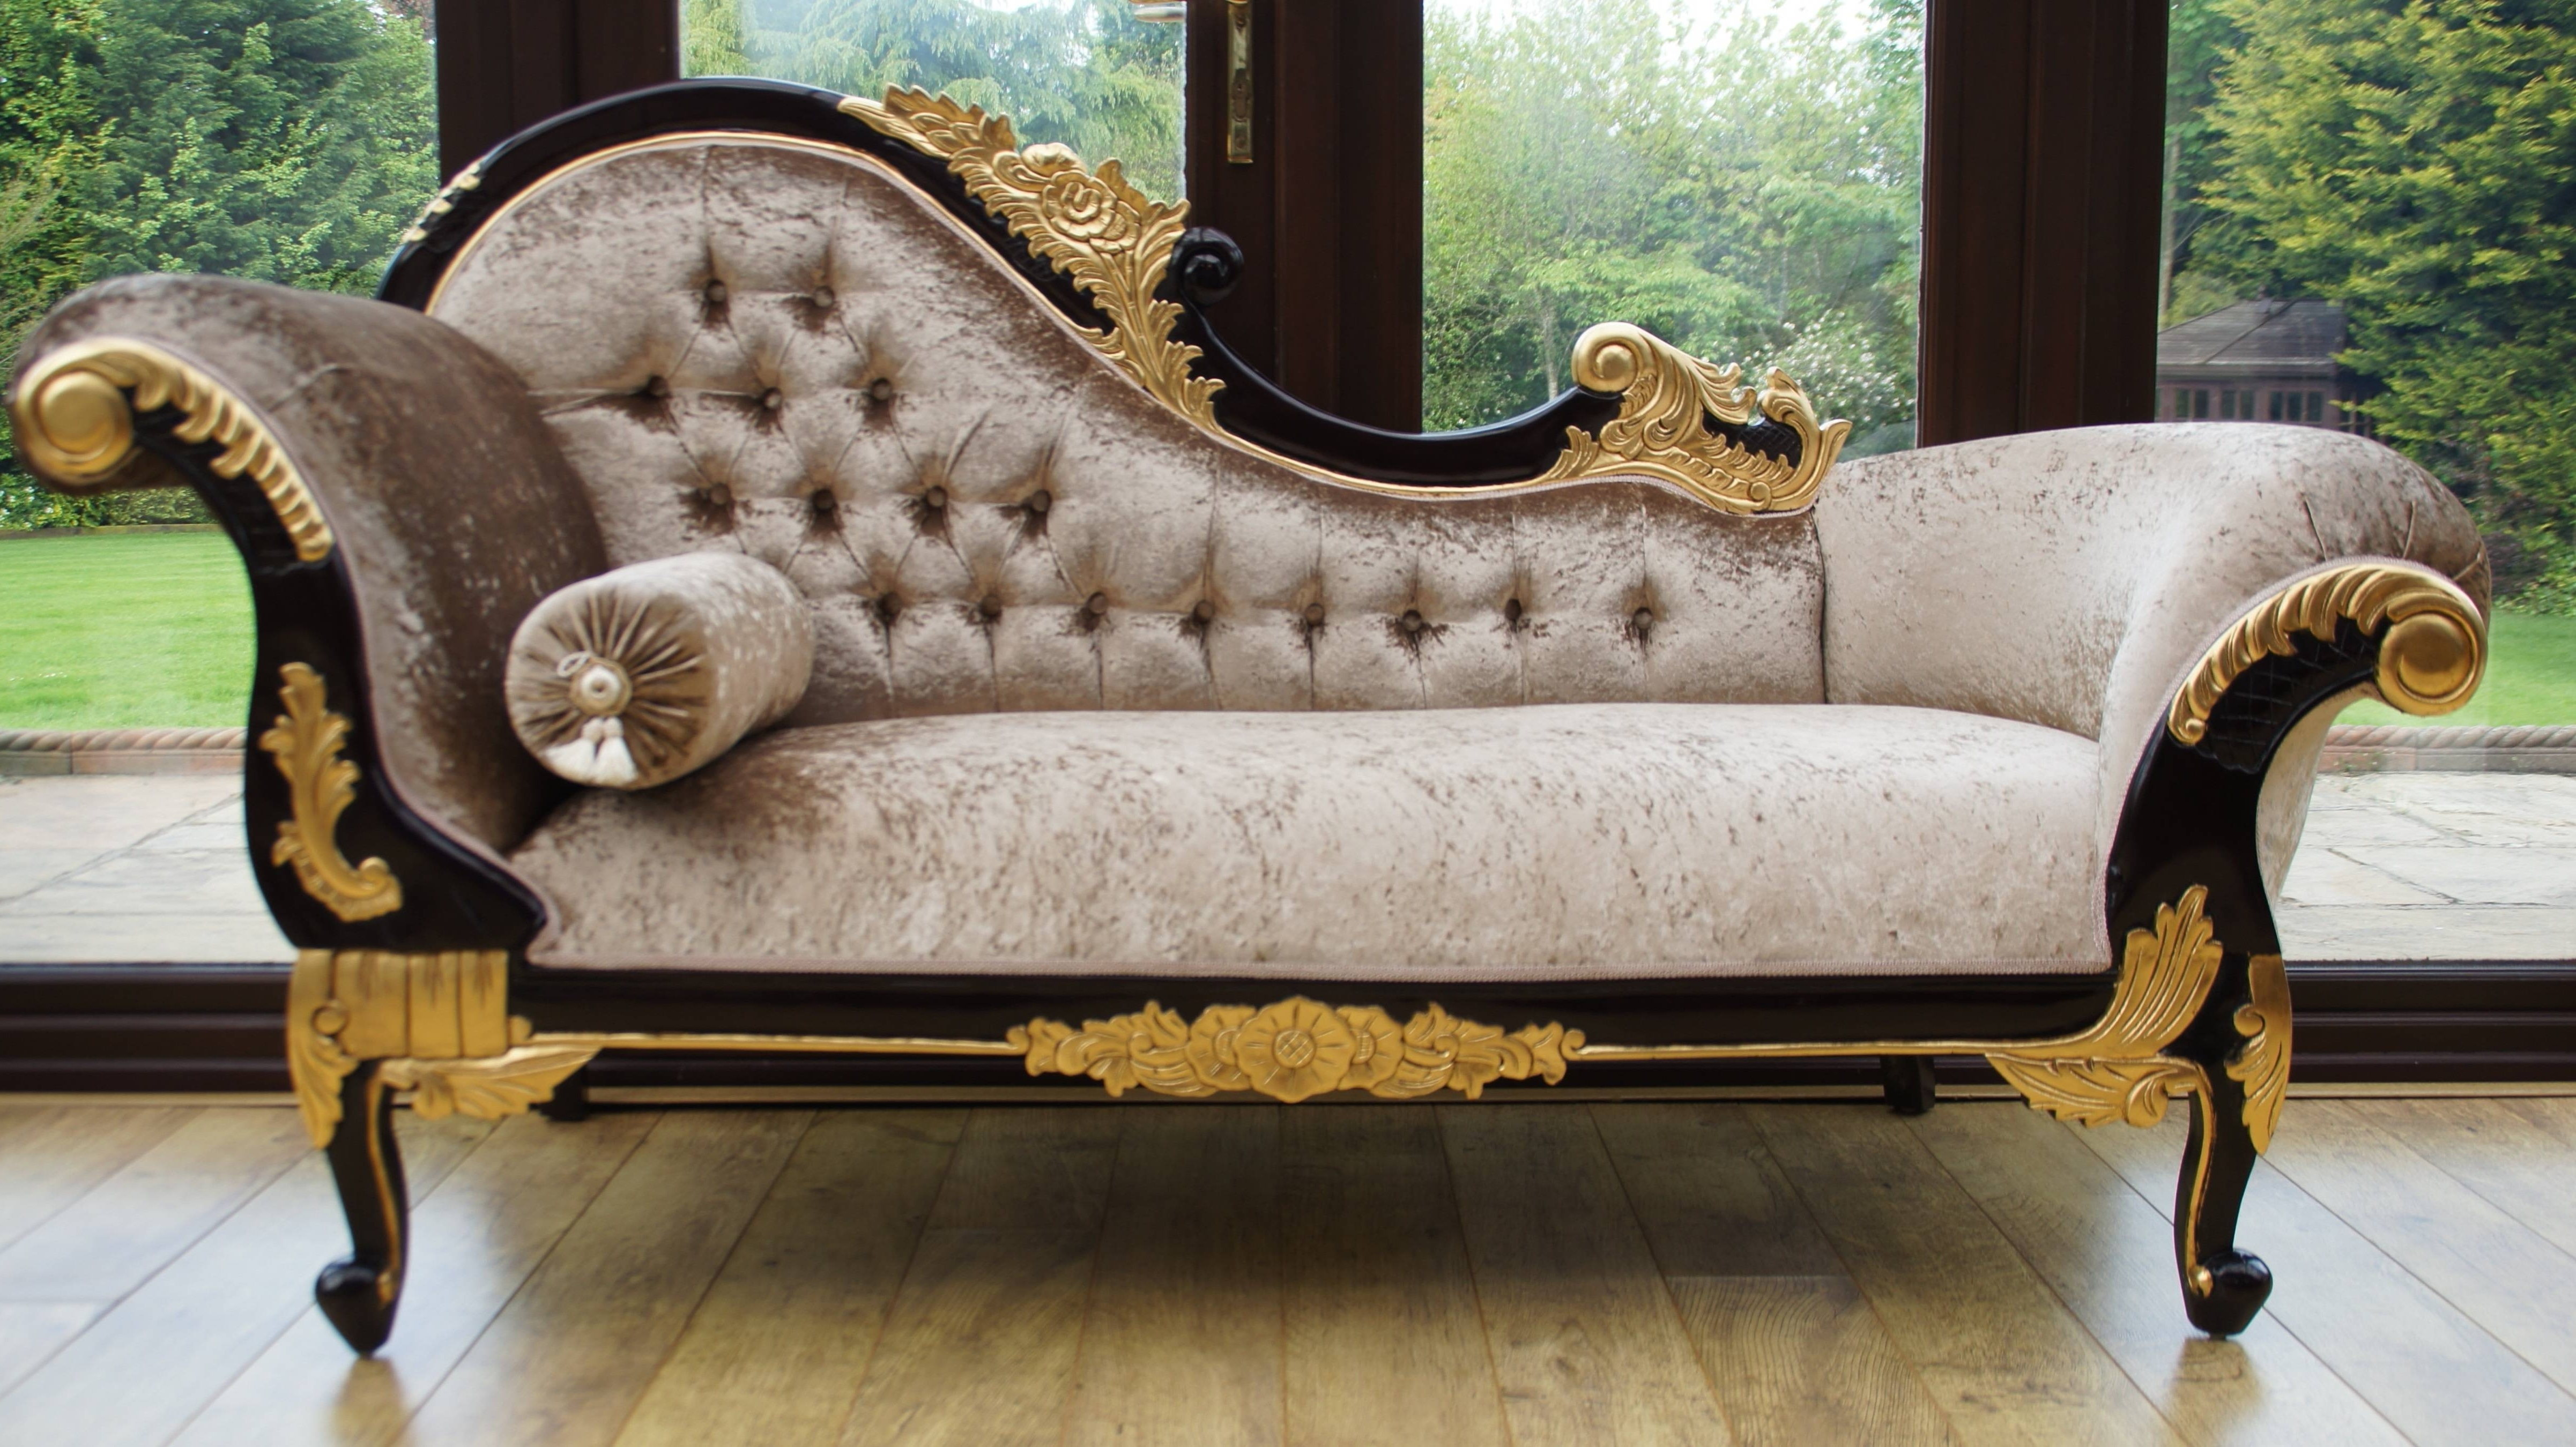 Velvet Chaises with regard to Widely used Chaise Chair Beautiful Antique Furniture Black And Gold Velvet Of